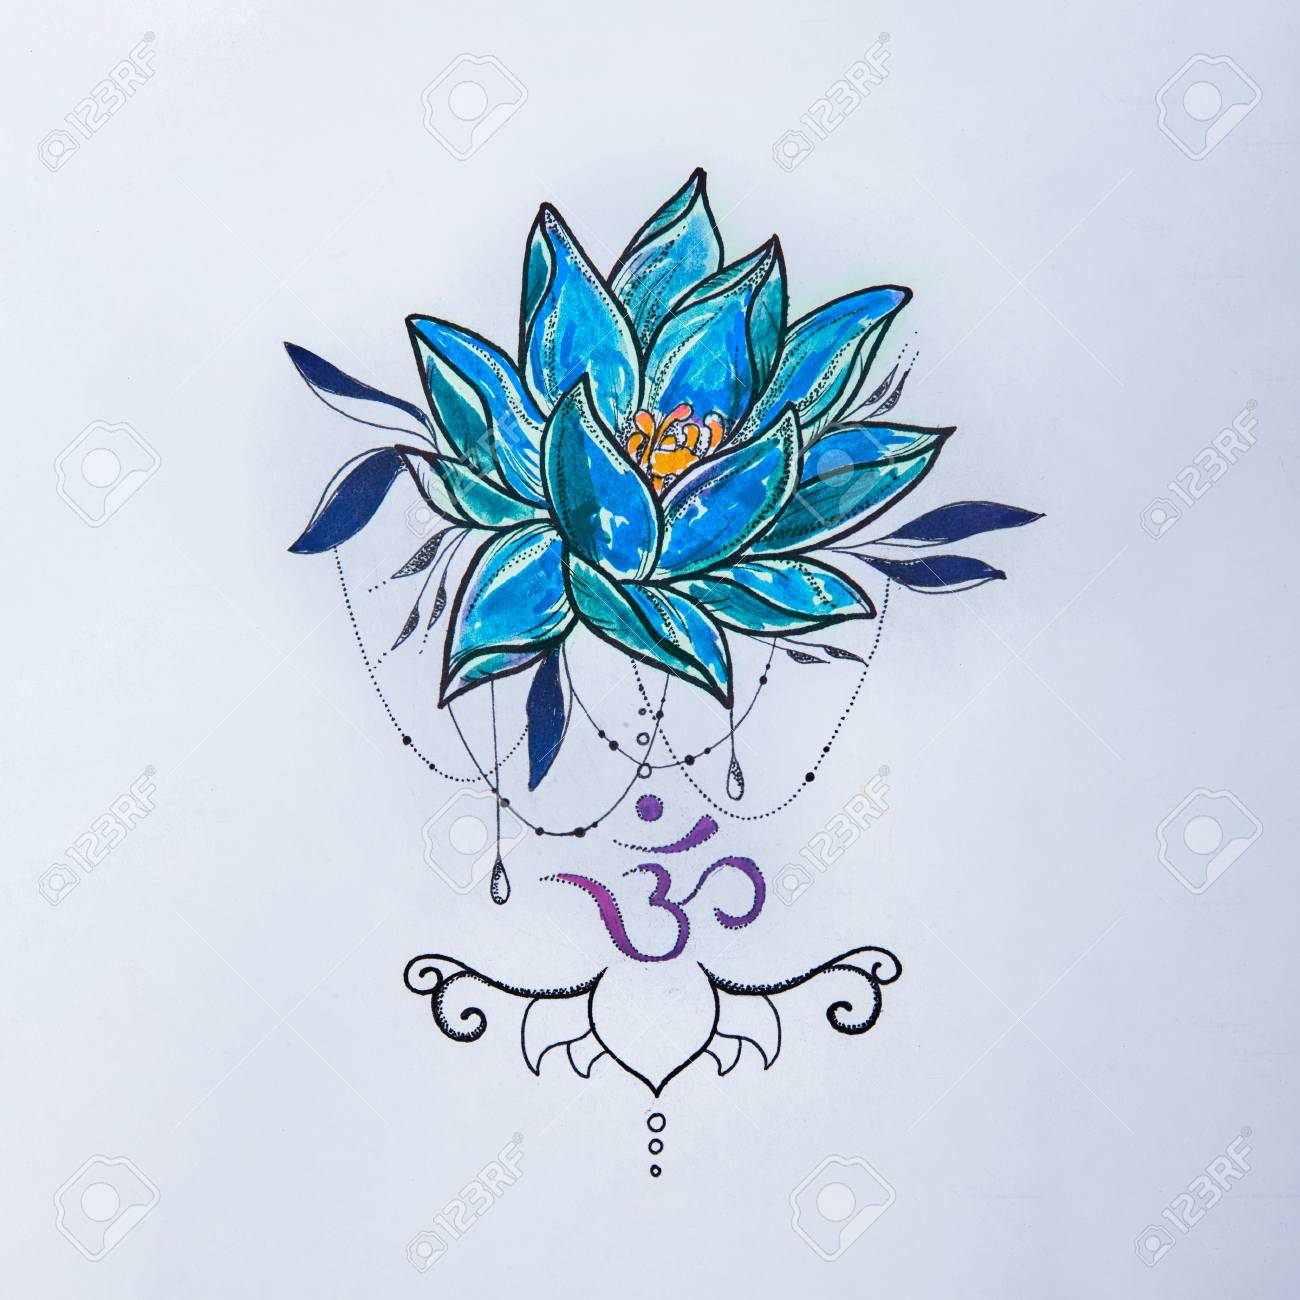 Sketch Lotus And Om Signs On A White Background Stock Photo